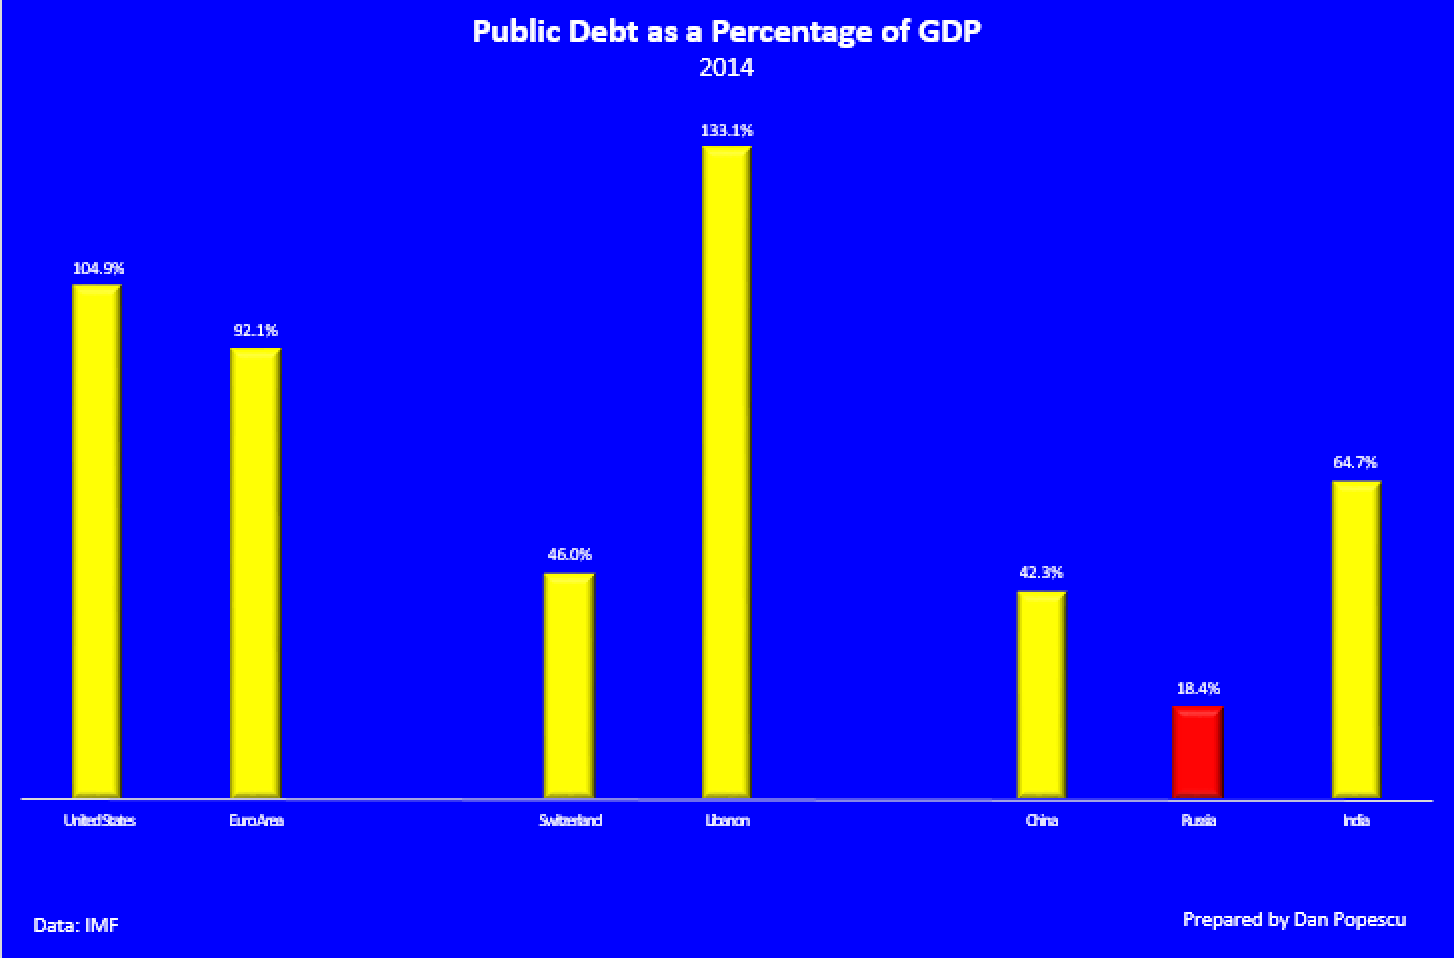 Public debt as percentage of GDP